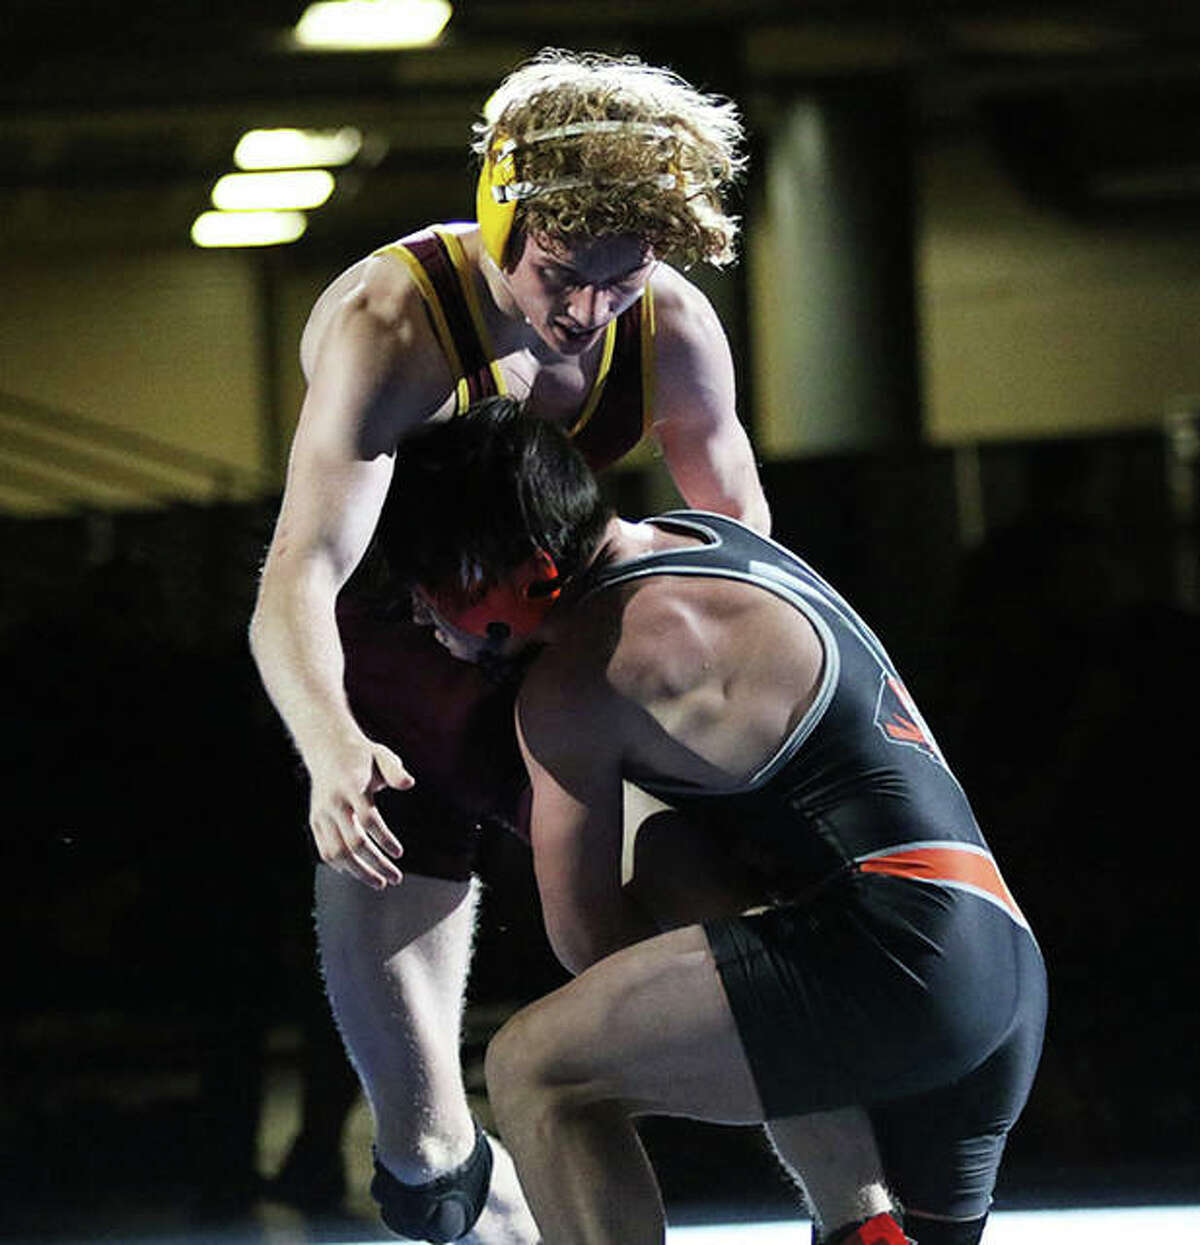 Illini Bluffs' Paul Ishikawa wraps up the left leg of EA-WR's Jason Shaw (back) and takes him off the mat for a takedown in the final seconds of overtime to win their 126-pound title match Thursday in the Class 1A state meet in Springfield.